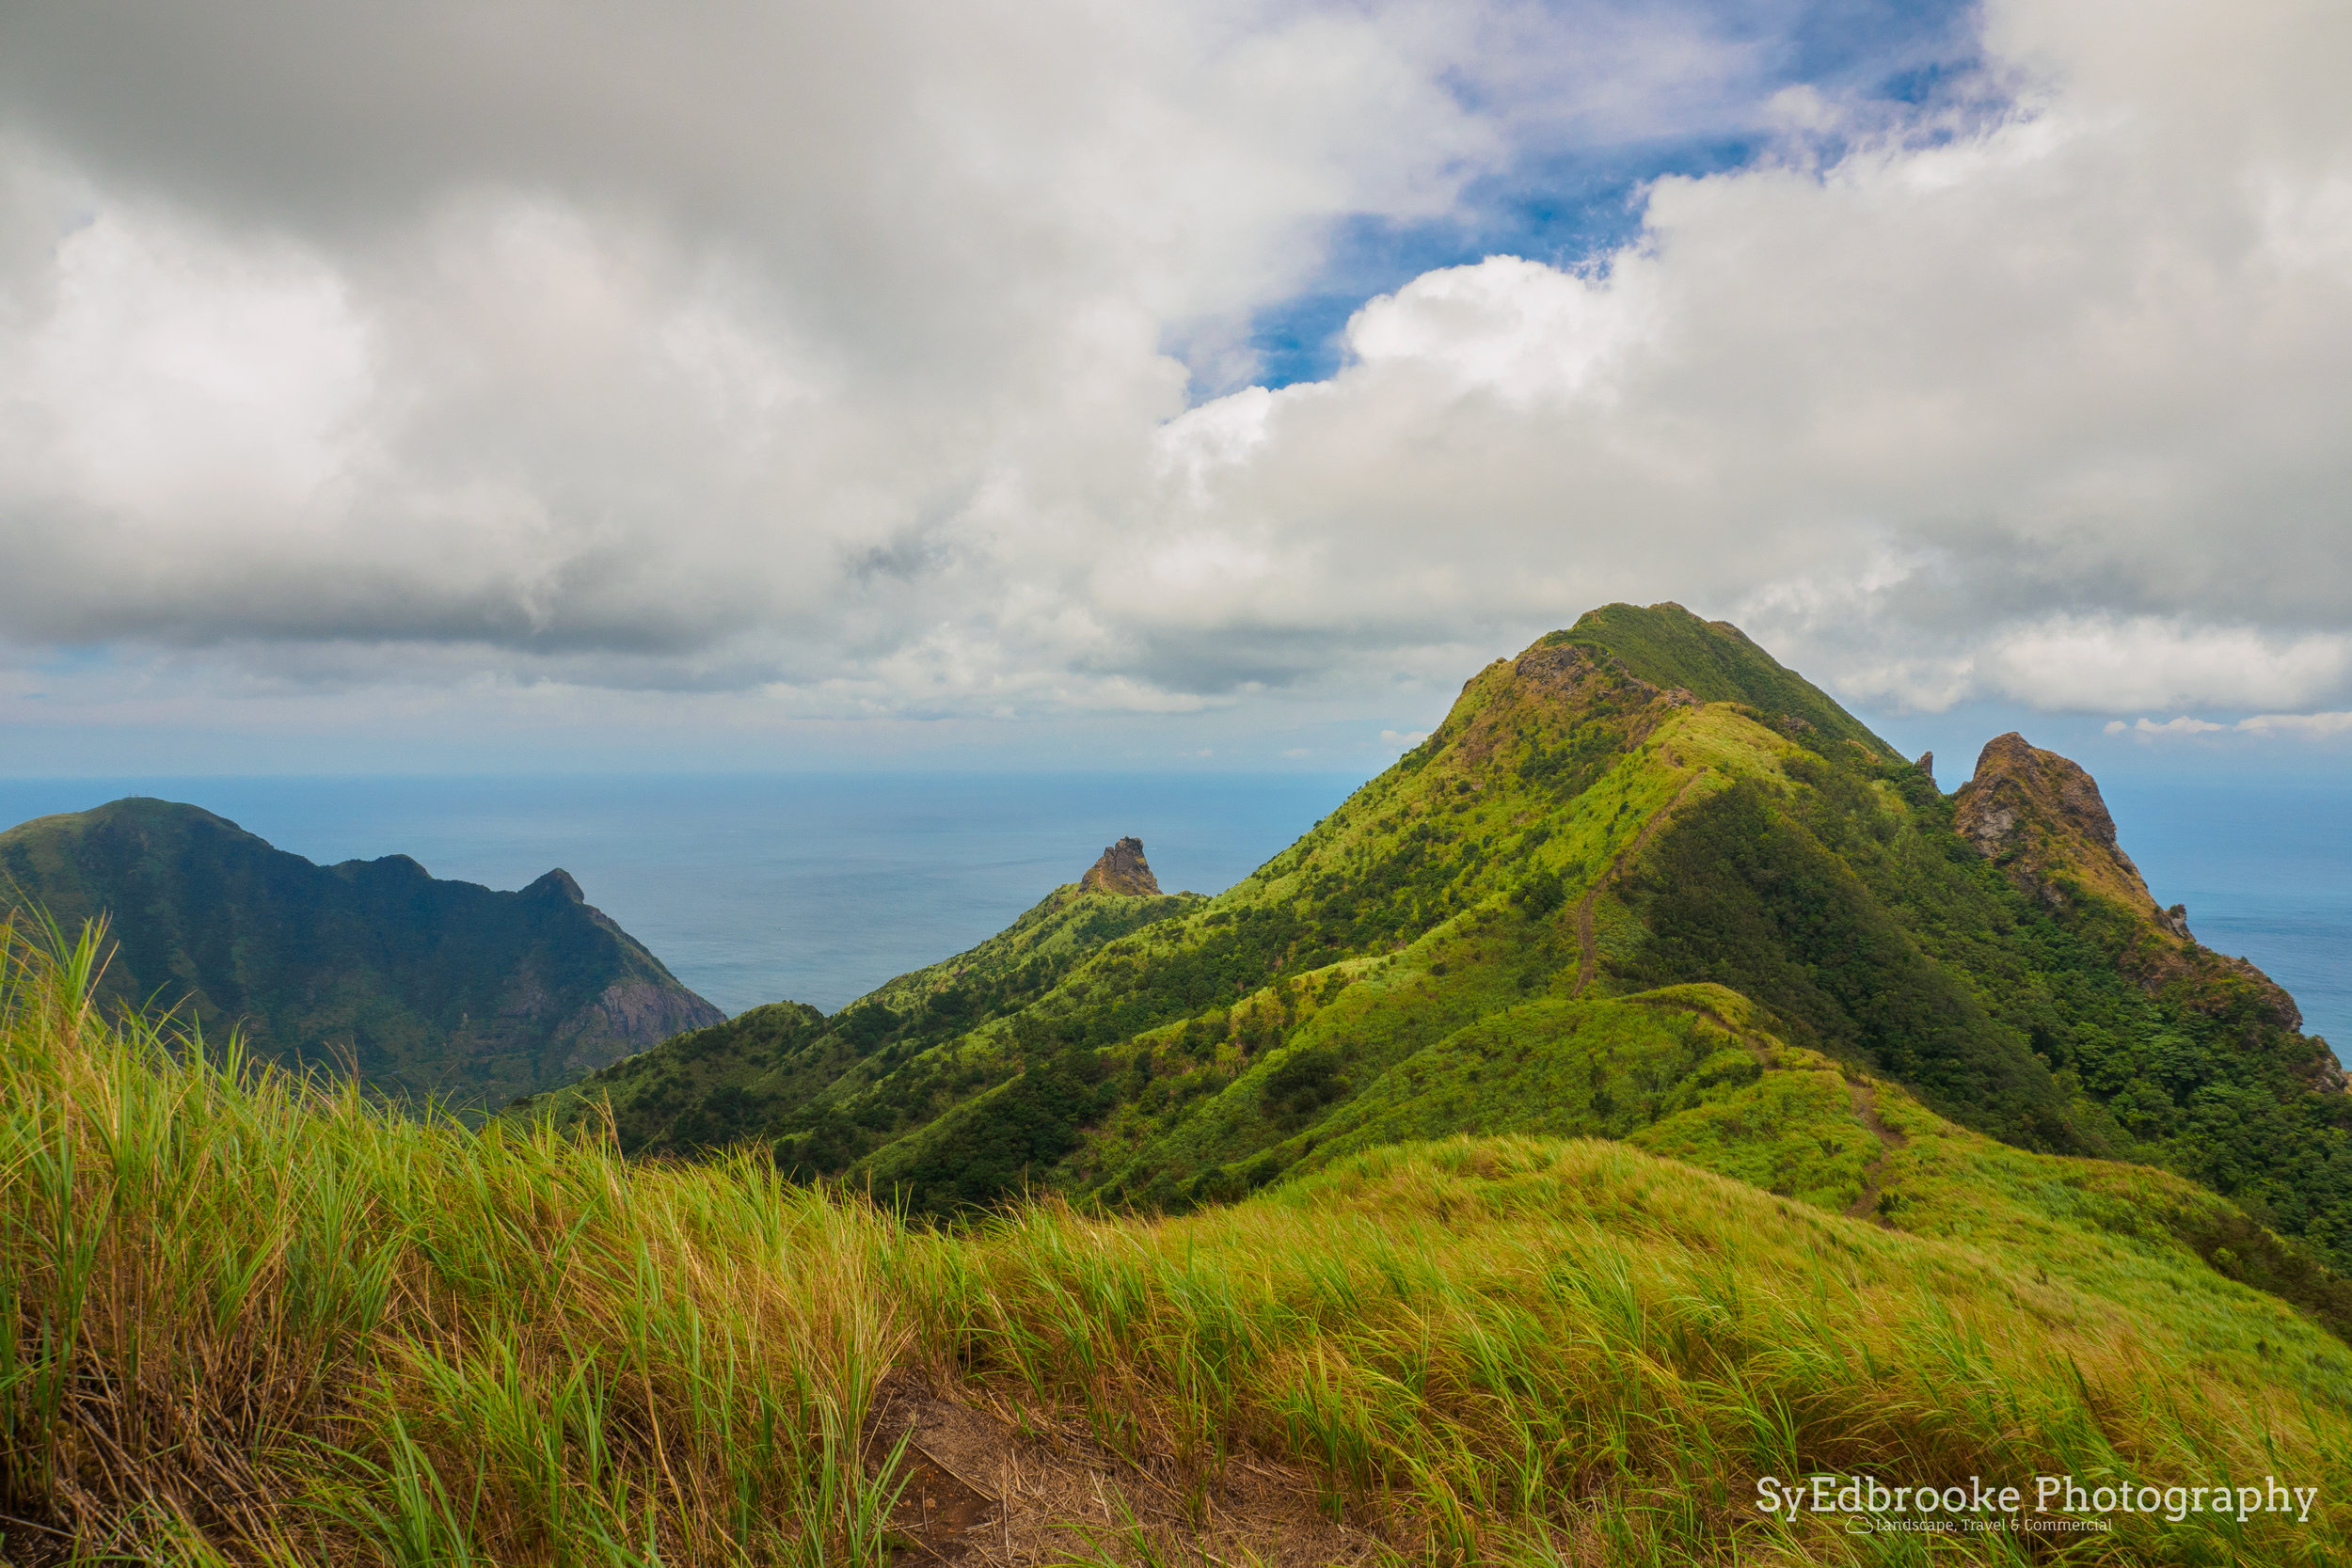 The trail towards Mt. Canguangliao on the ridge. f11, ISO 200, 1/100, 24mm